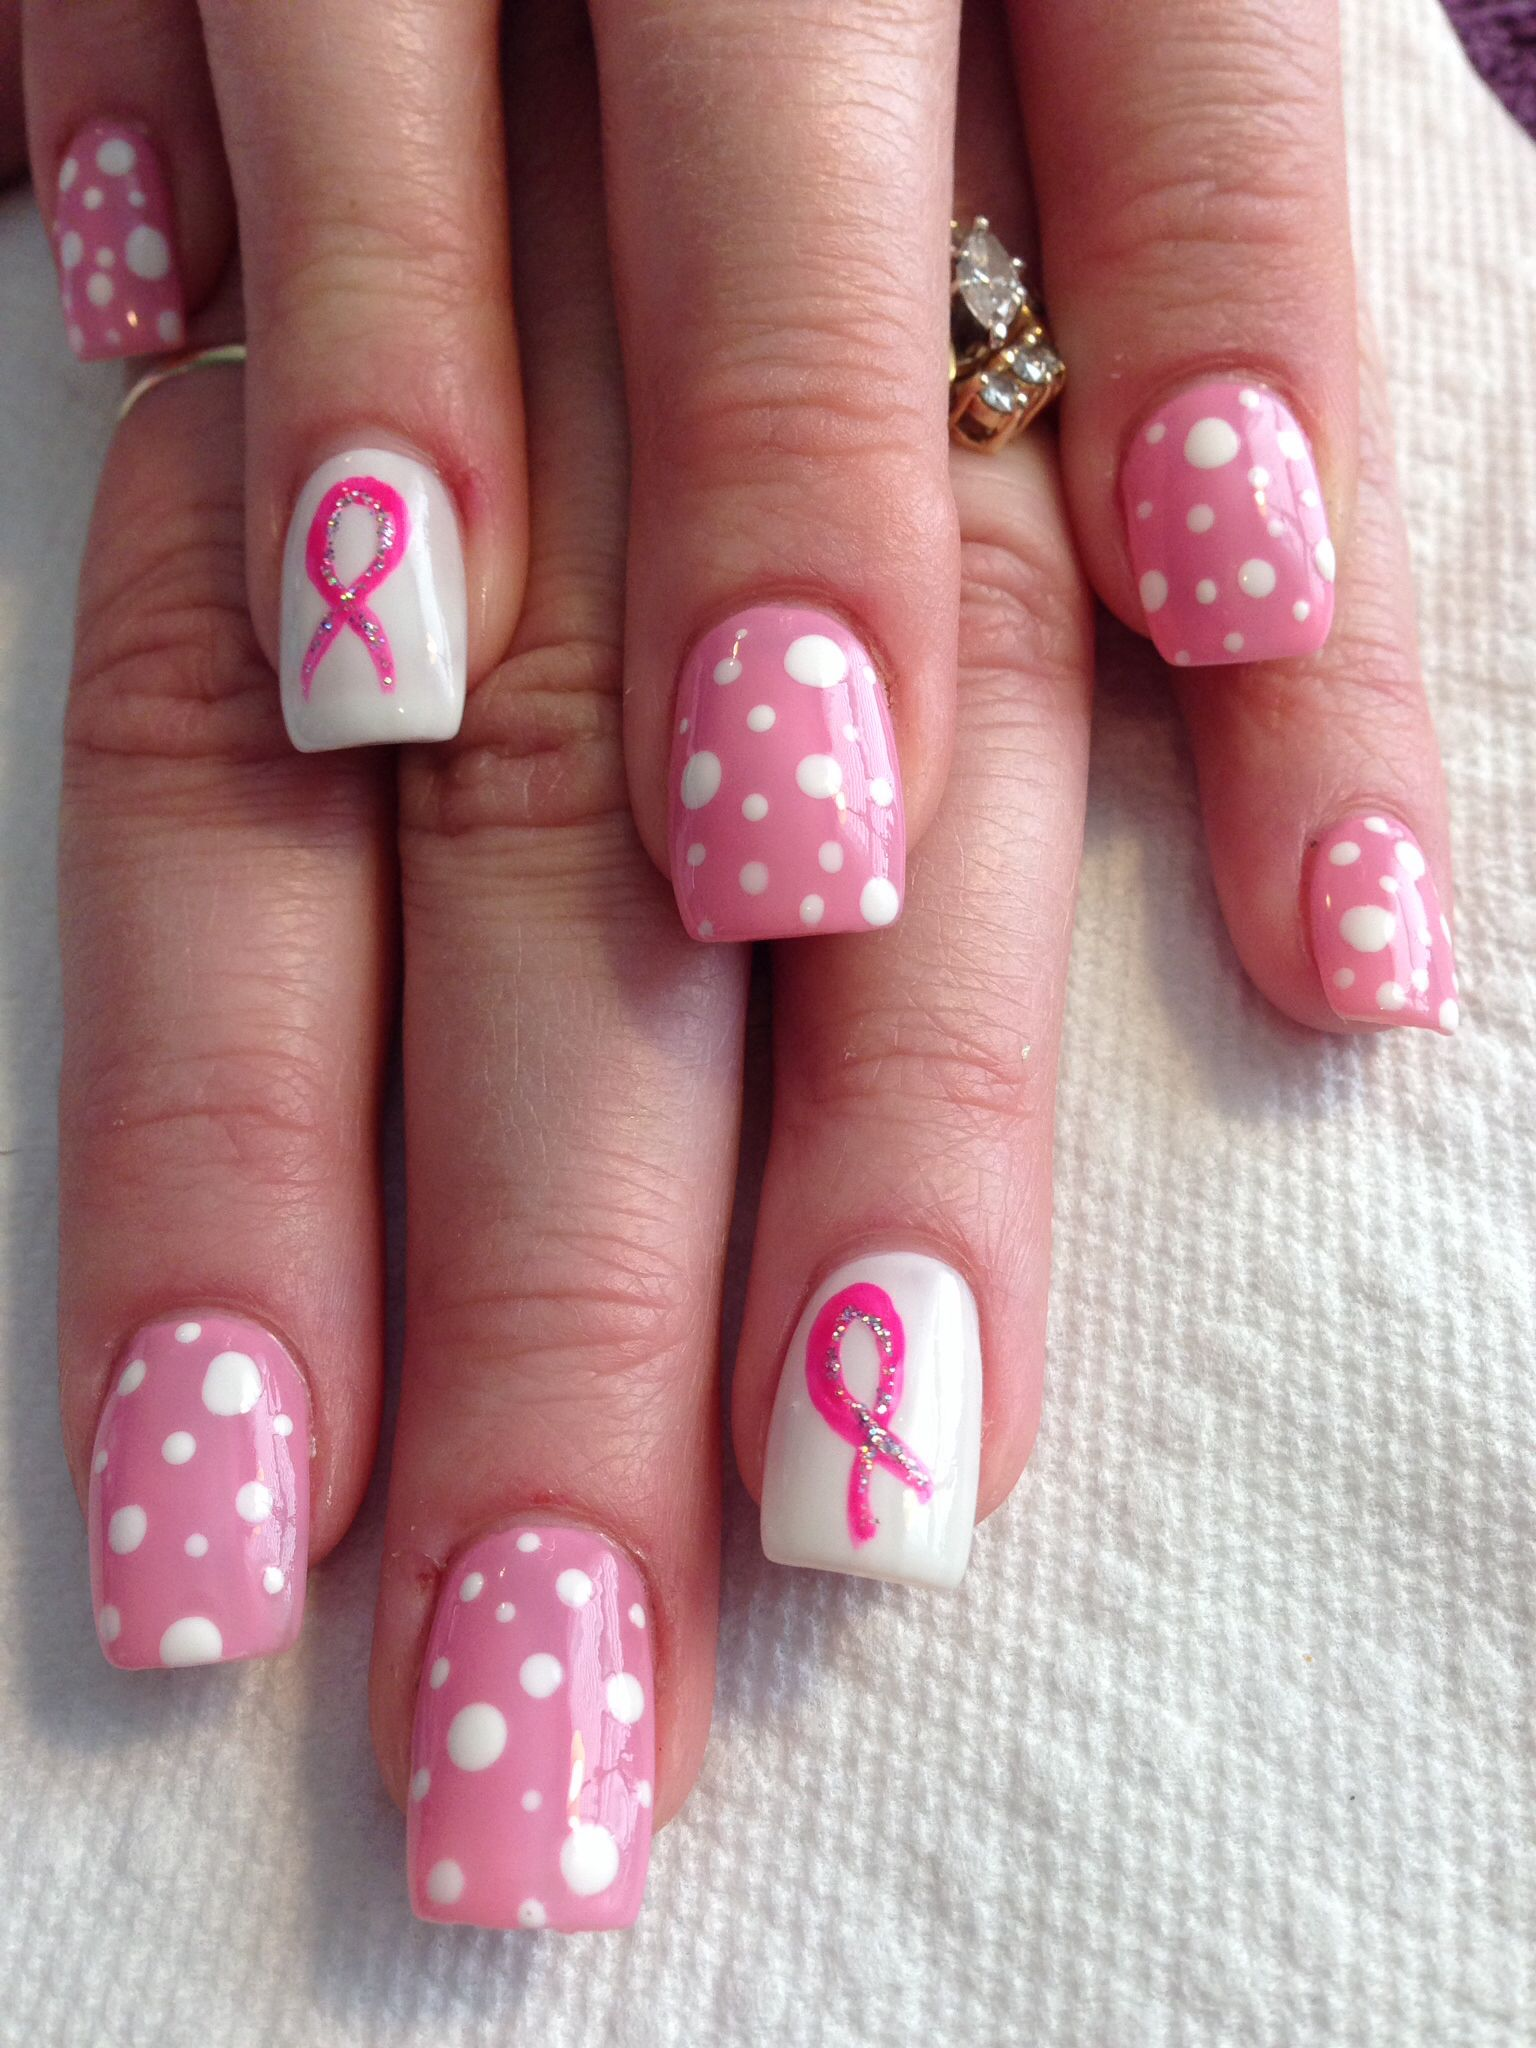 T Cancer Awareness Nails Over Acrylics Acrylic How To Do